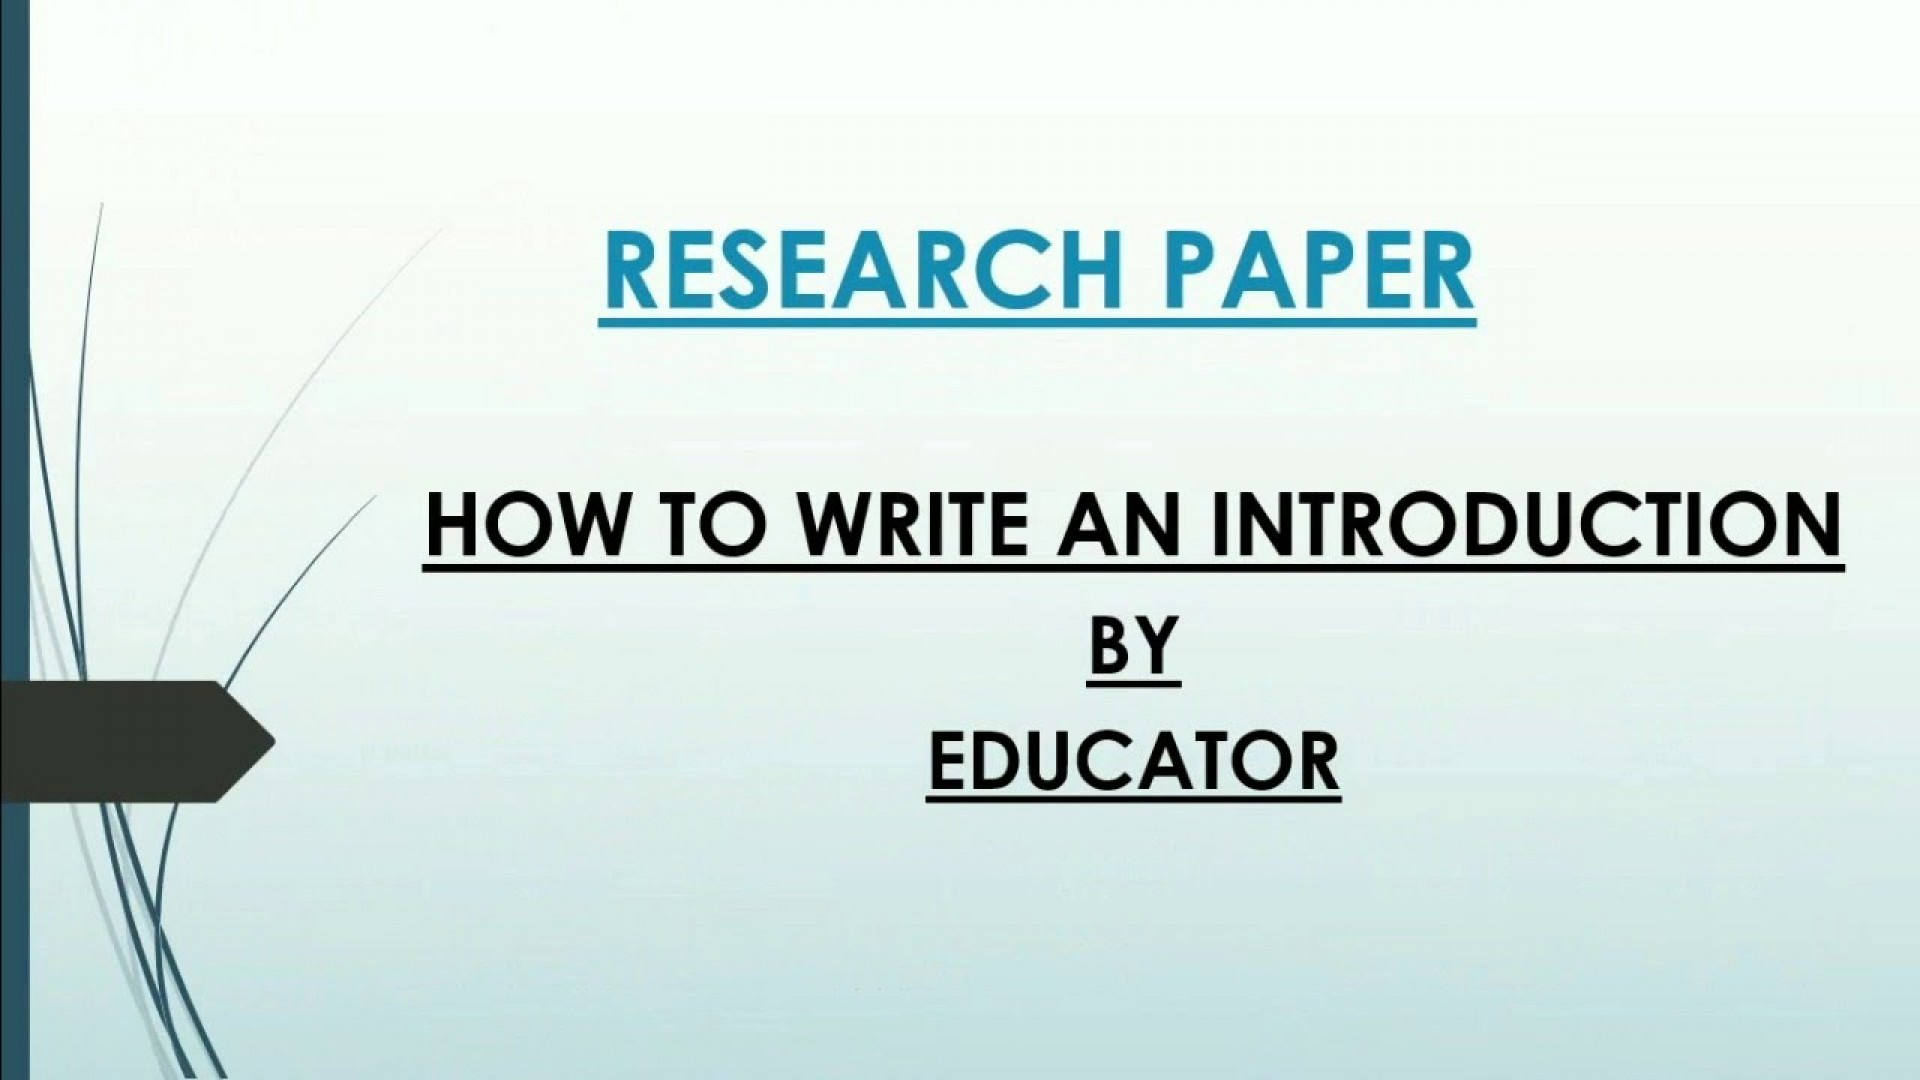 009 Maxresdefault How To Write An Introduction For Research Dreaded A Paper Sample Pdf Outline 1920